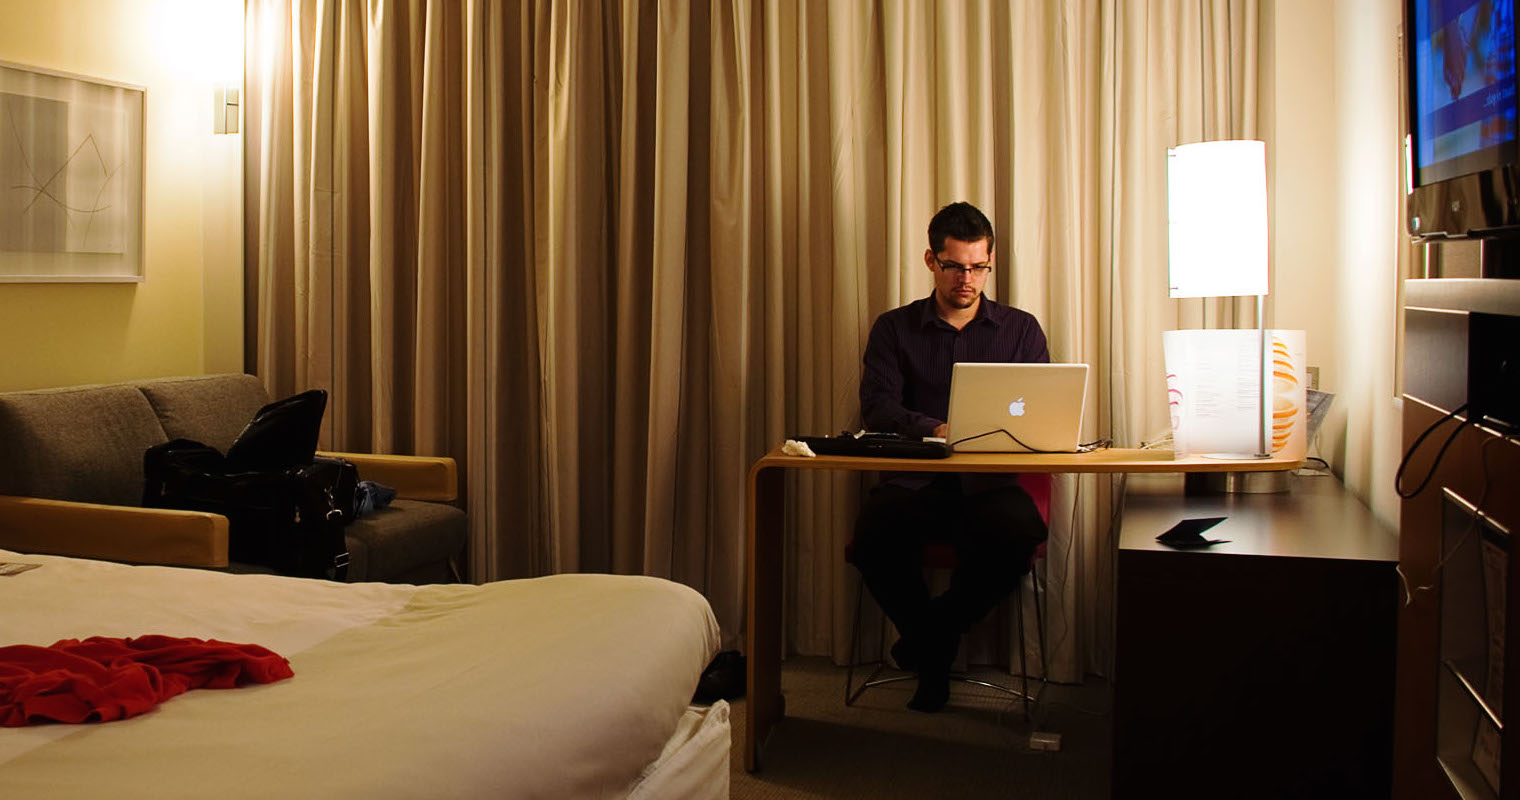 Five Gadgets You Need to Work From a Hotel Room